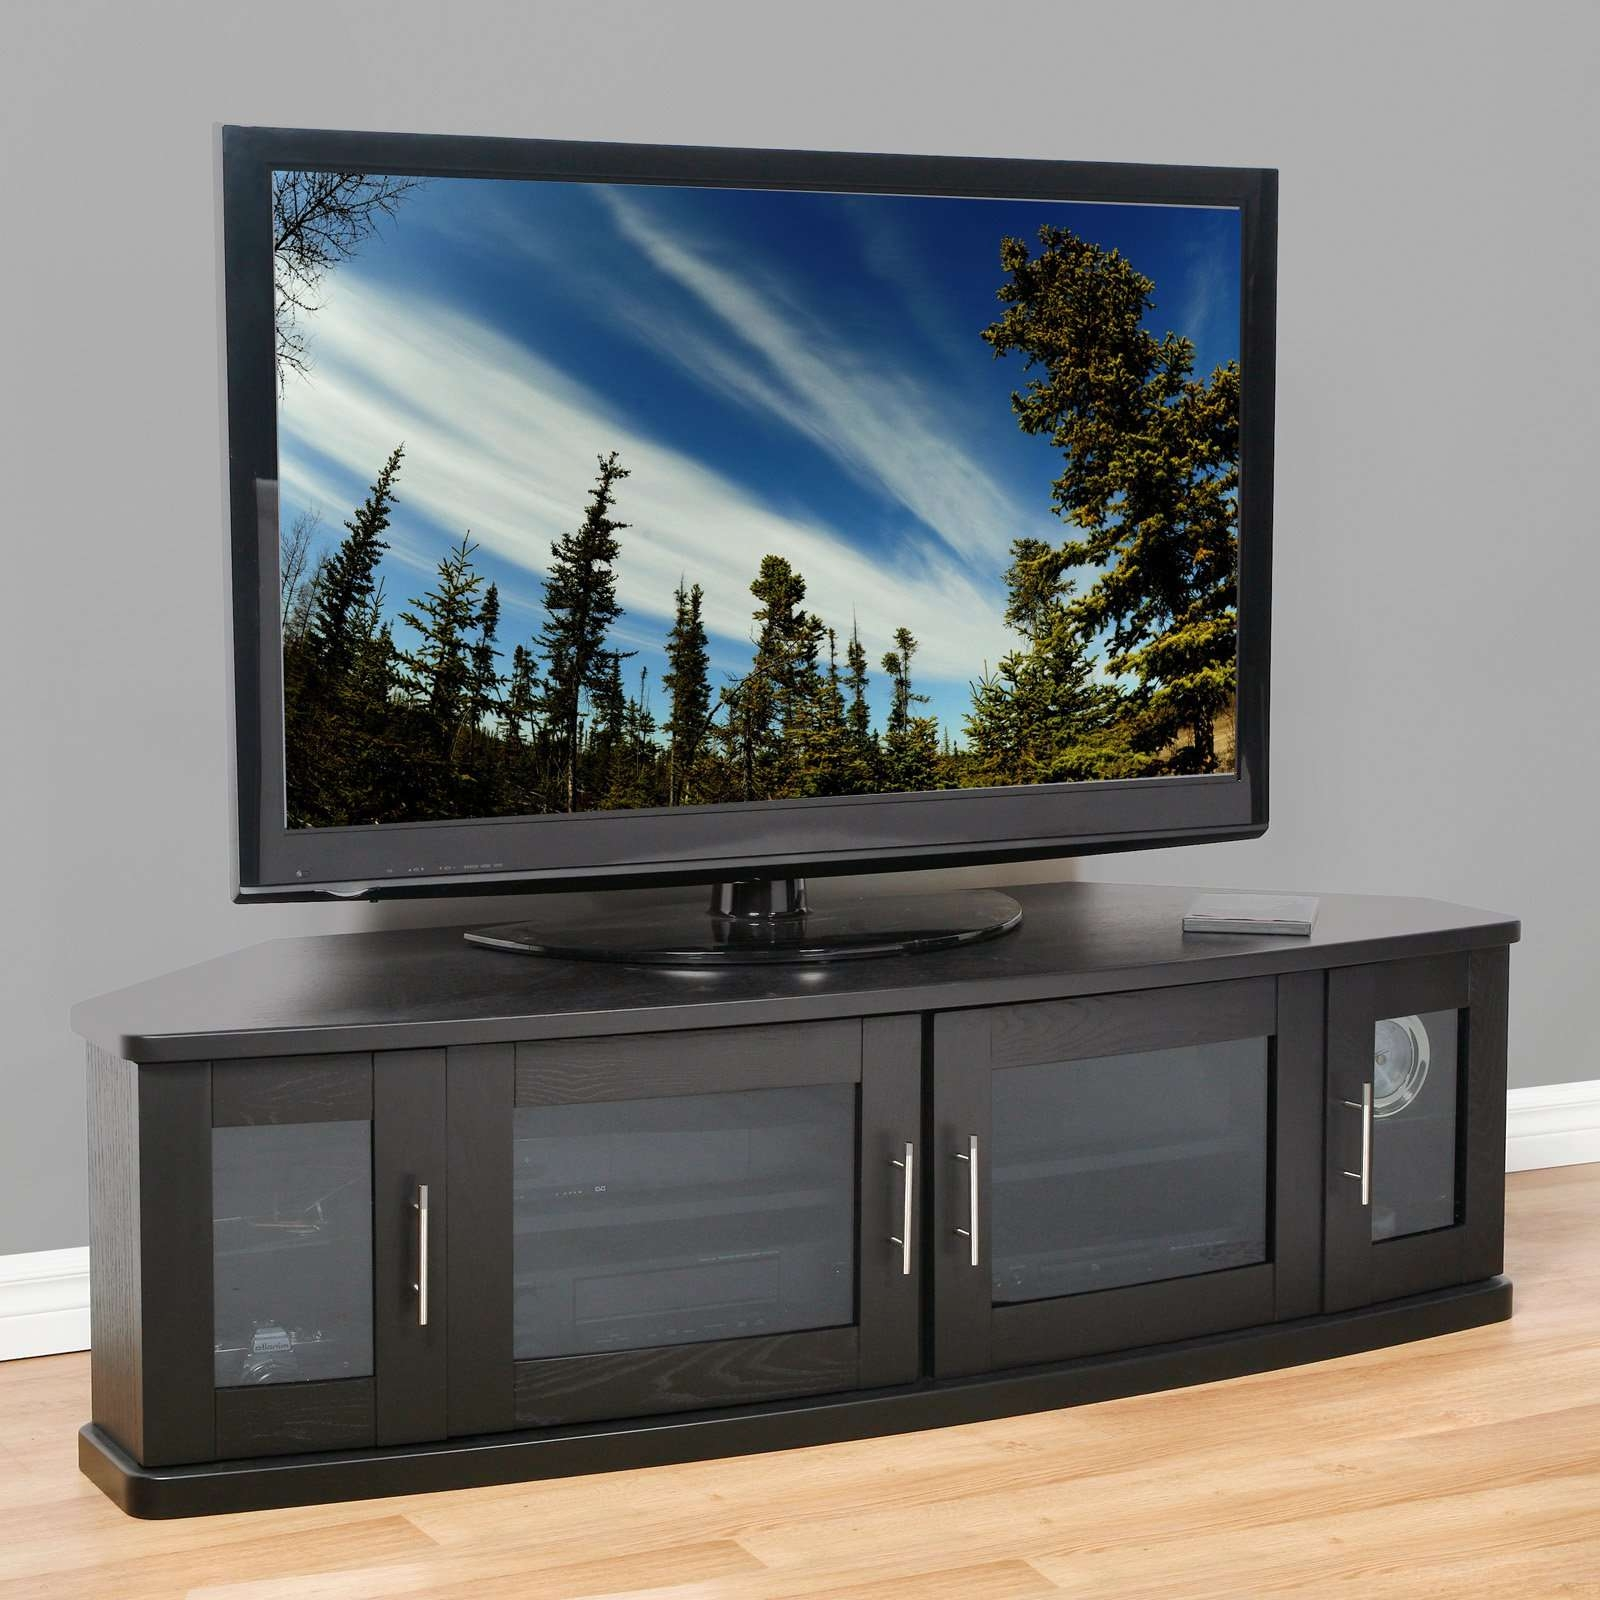 Tv Stand : 8d324a5cf92e 1 Amazing Tv Stand In Pictures Design Intended For Low Corner Tv Stands (View 8 of 20)